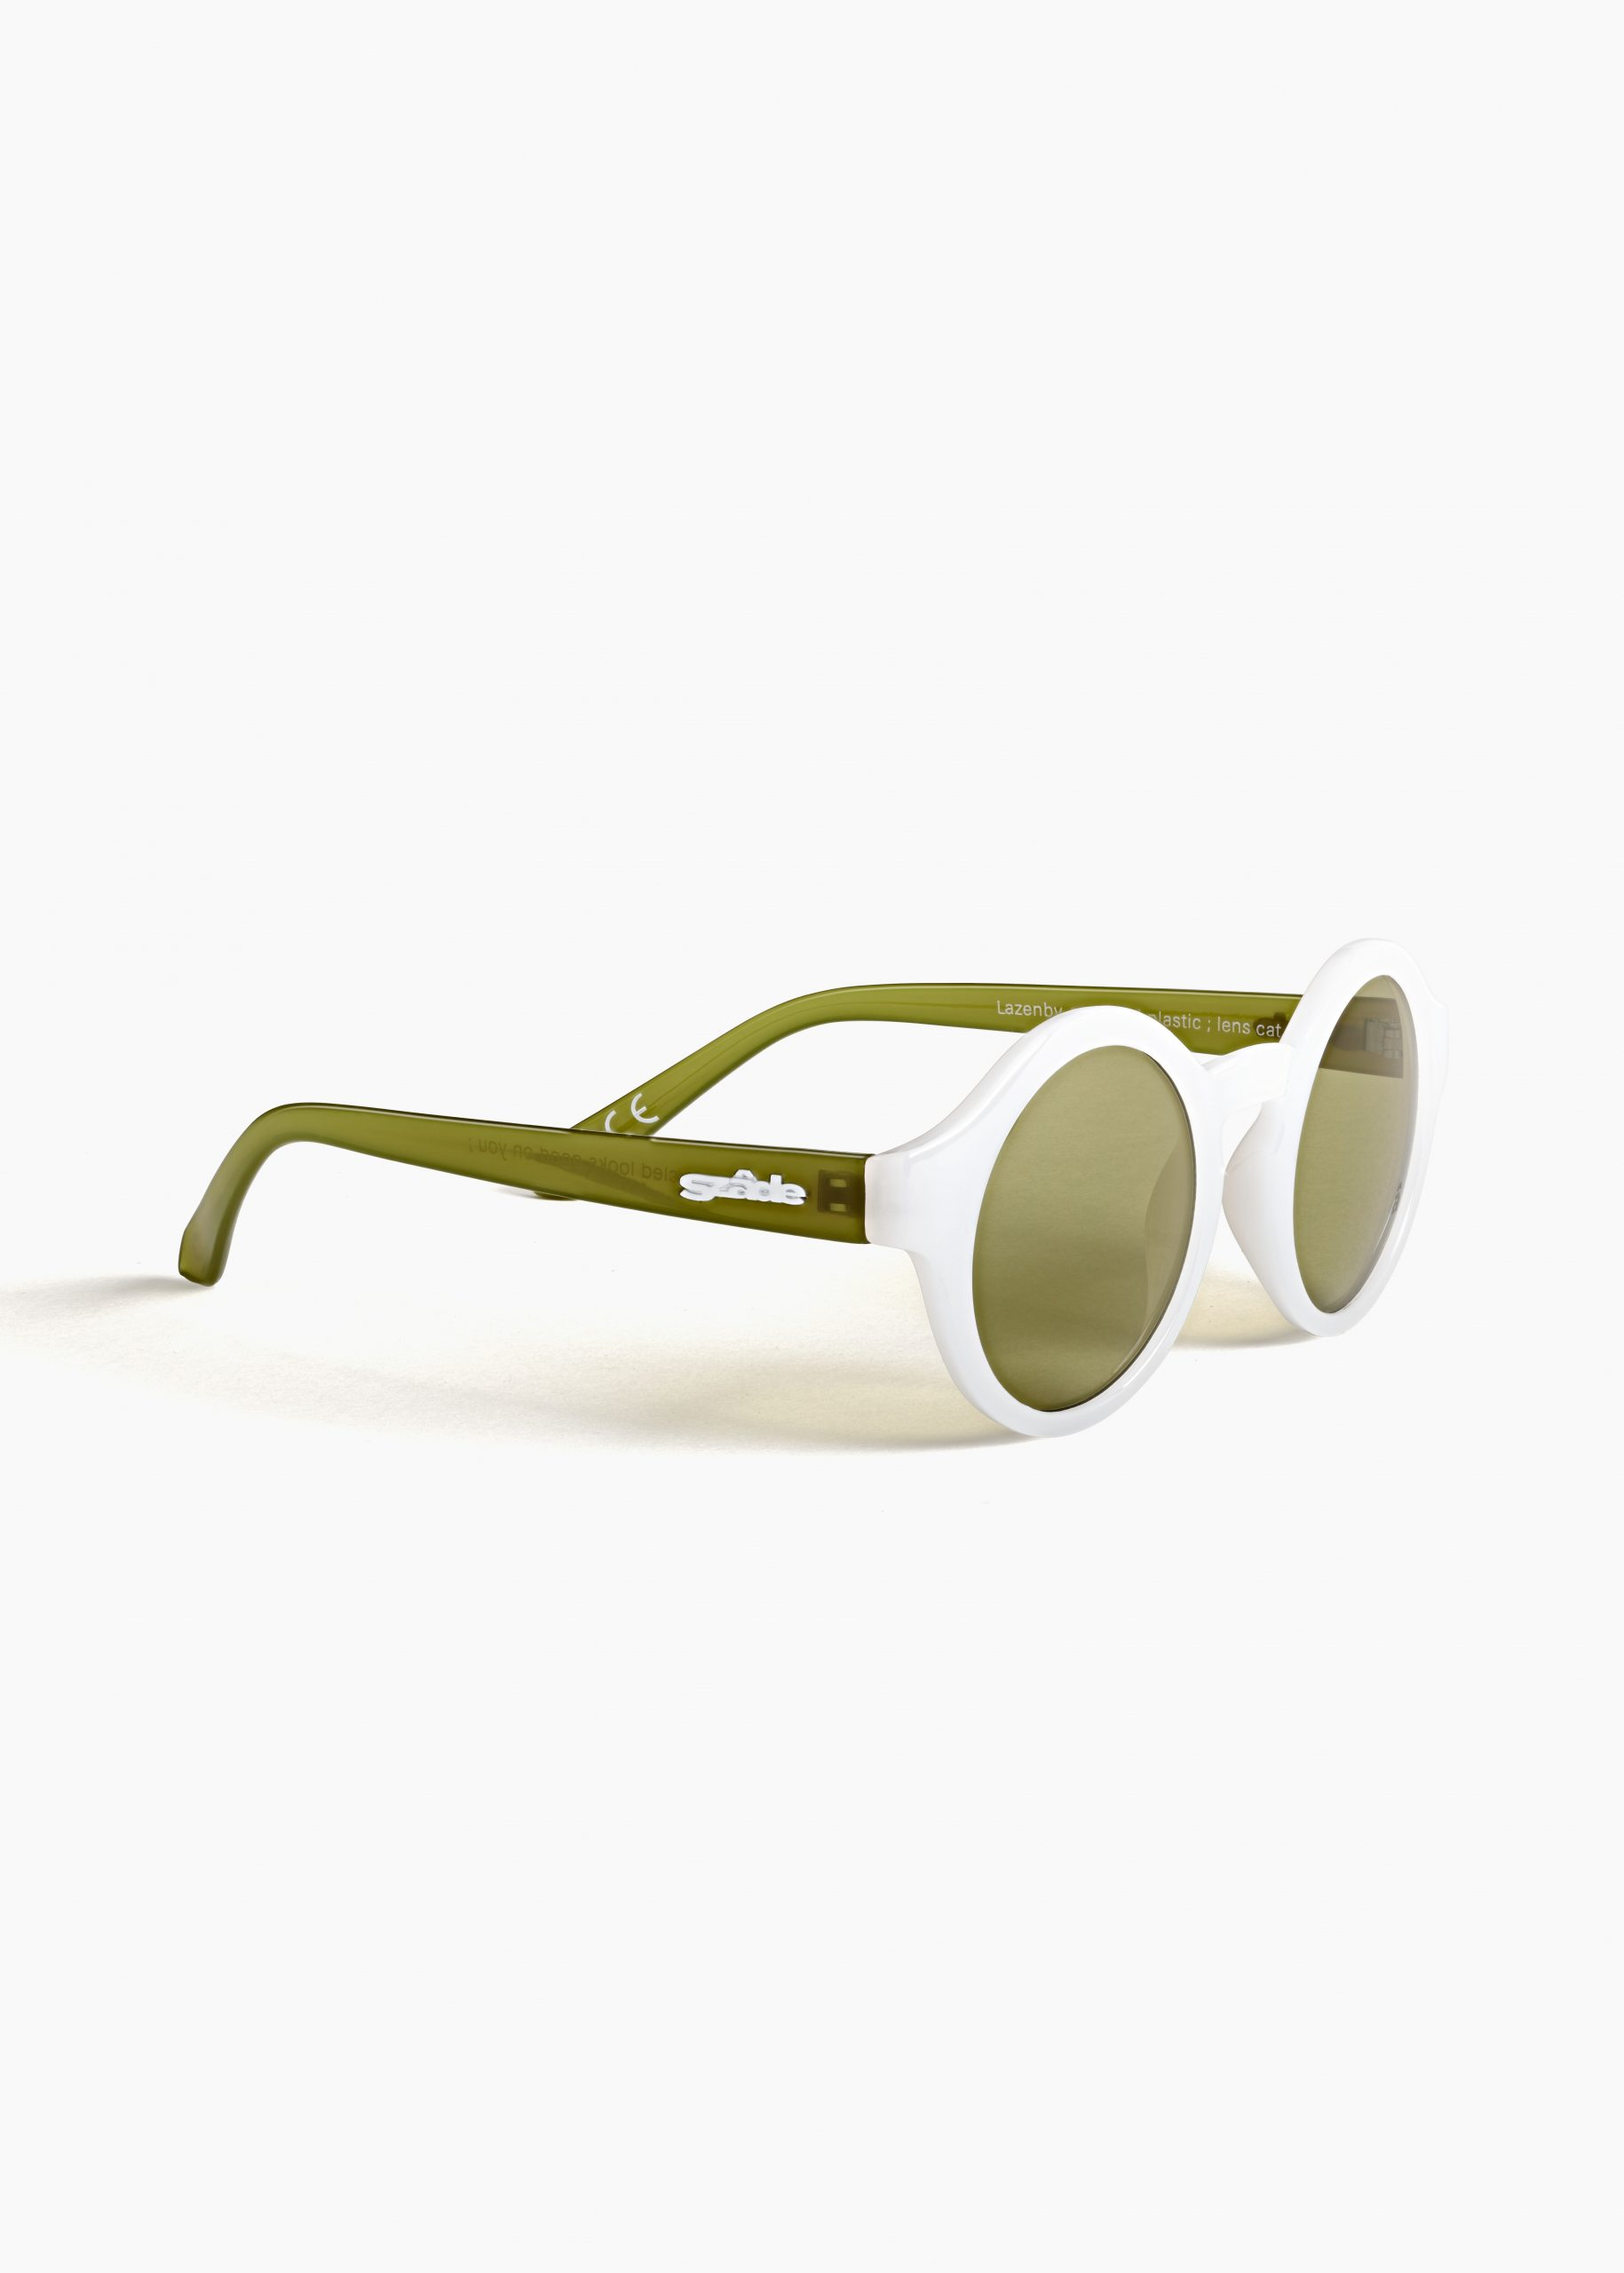 Szade Recycled, lazenby ; bleach _ charred olive _ caper, RRP $79.99 (2)